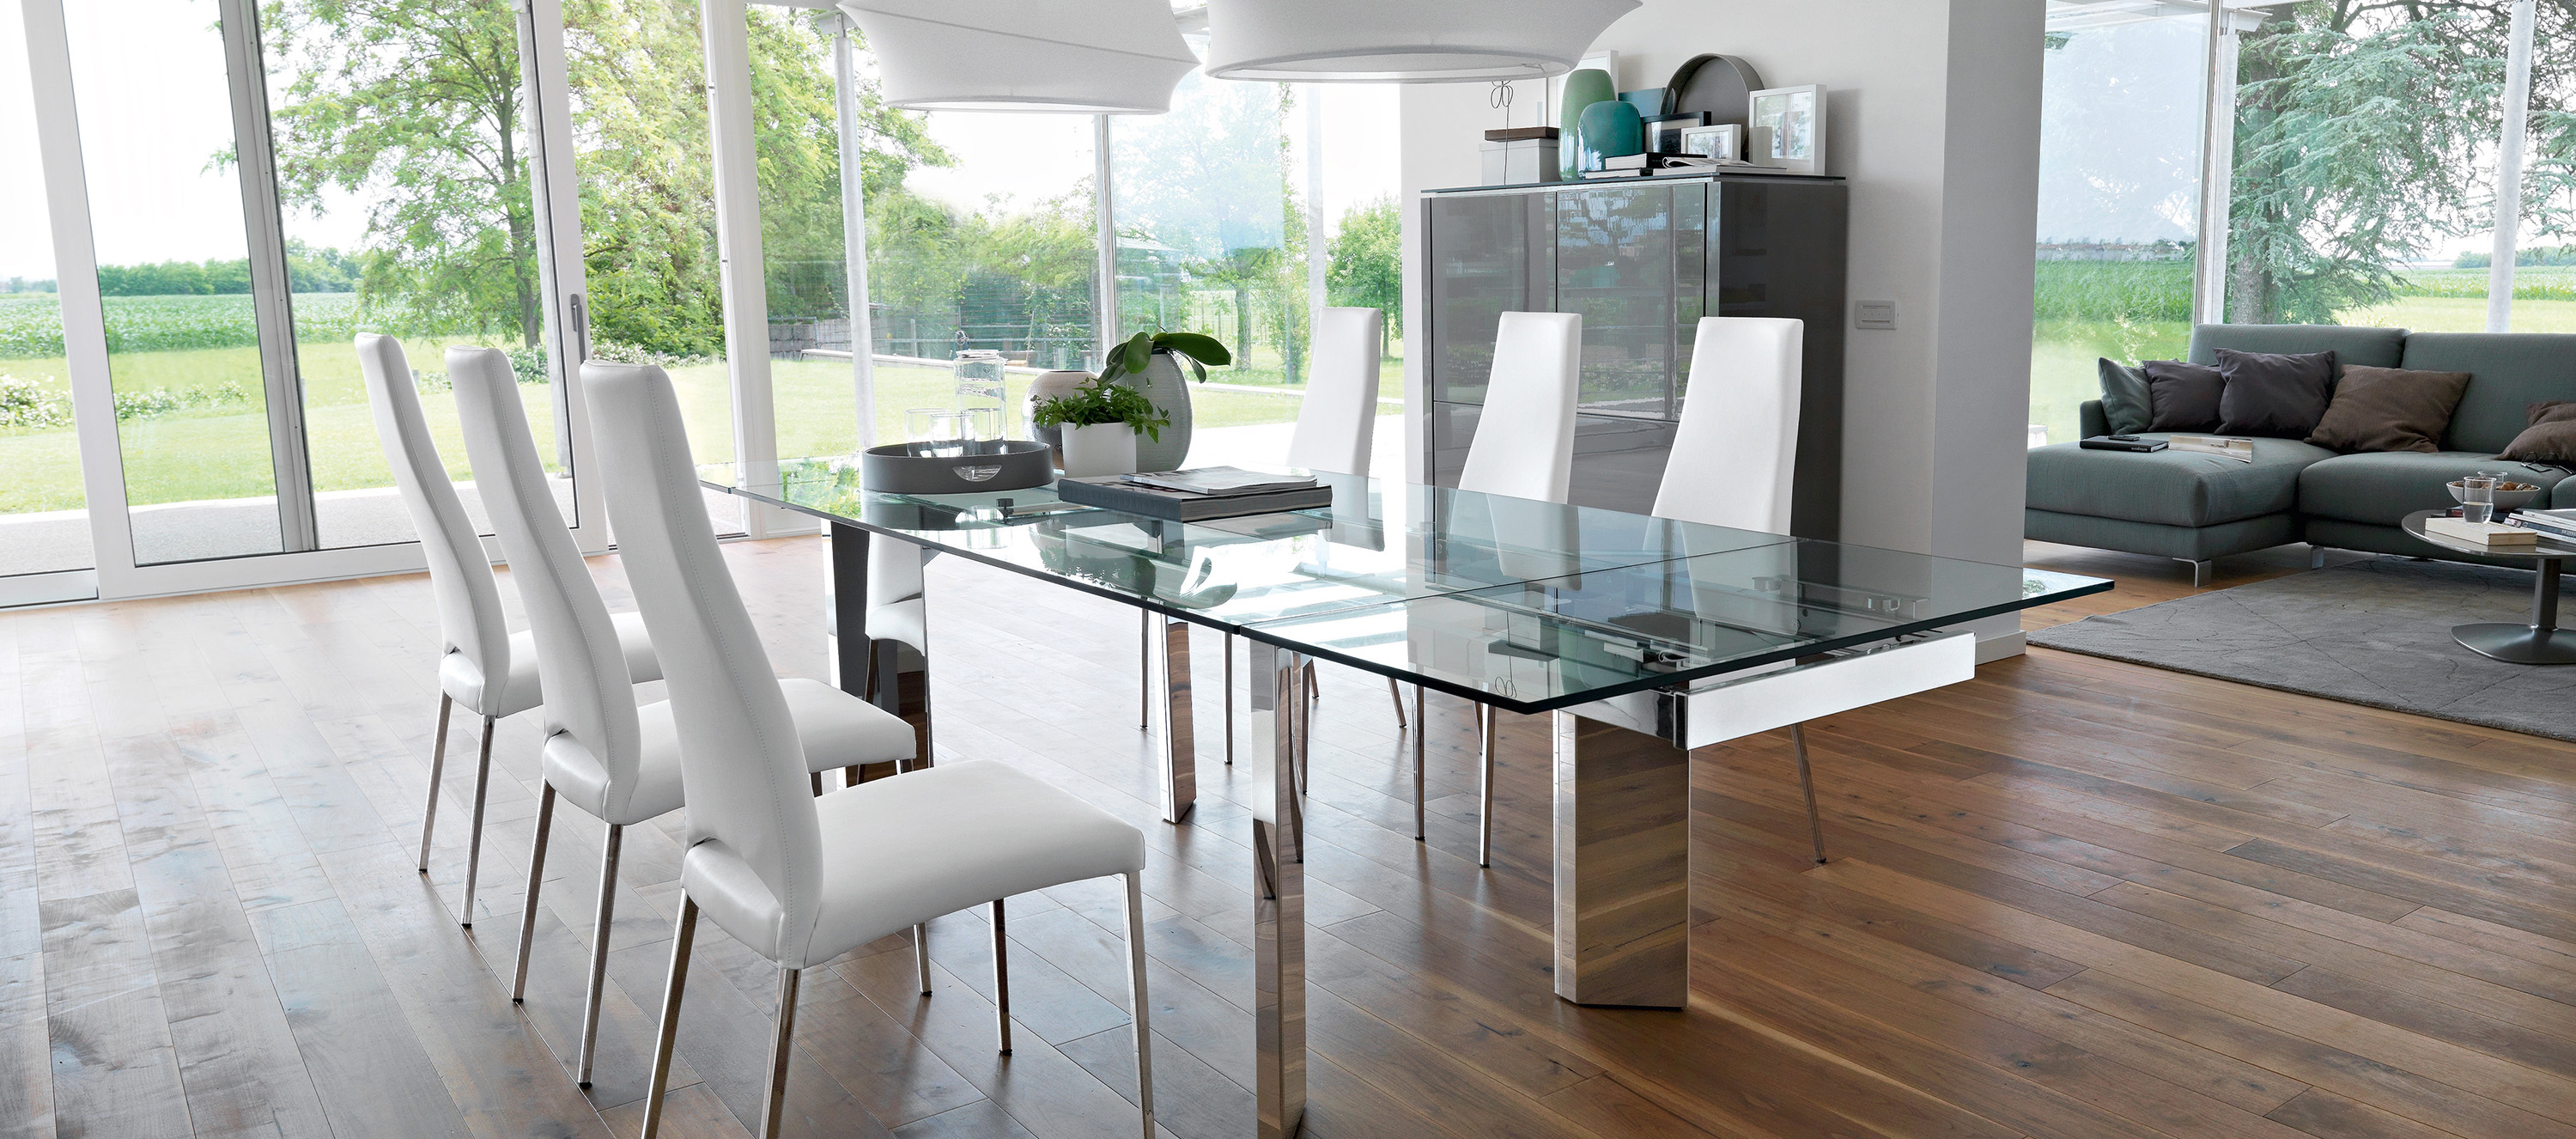 Calligaris tower modern extendable glass dining table for Arredamenti di lusso moderni